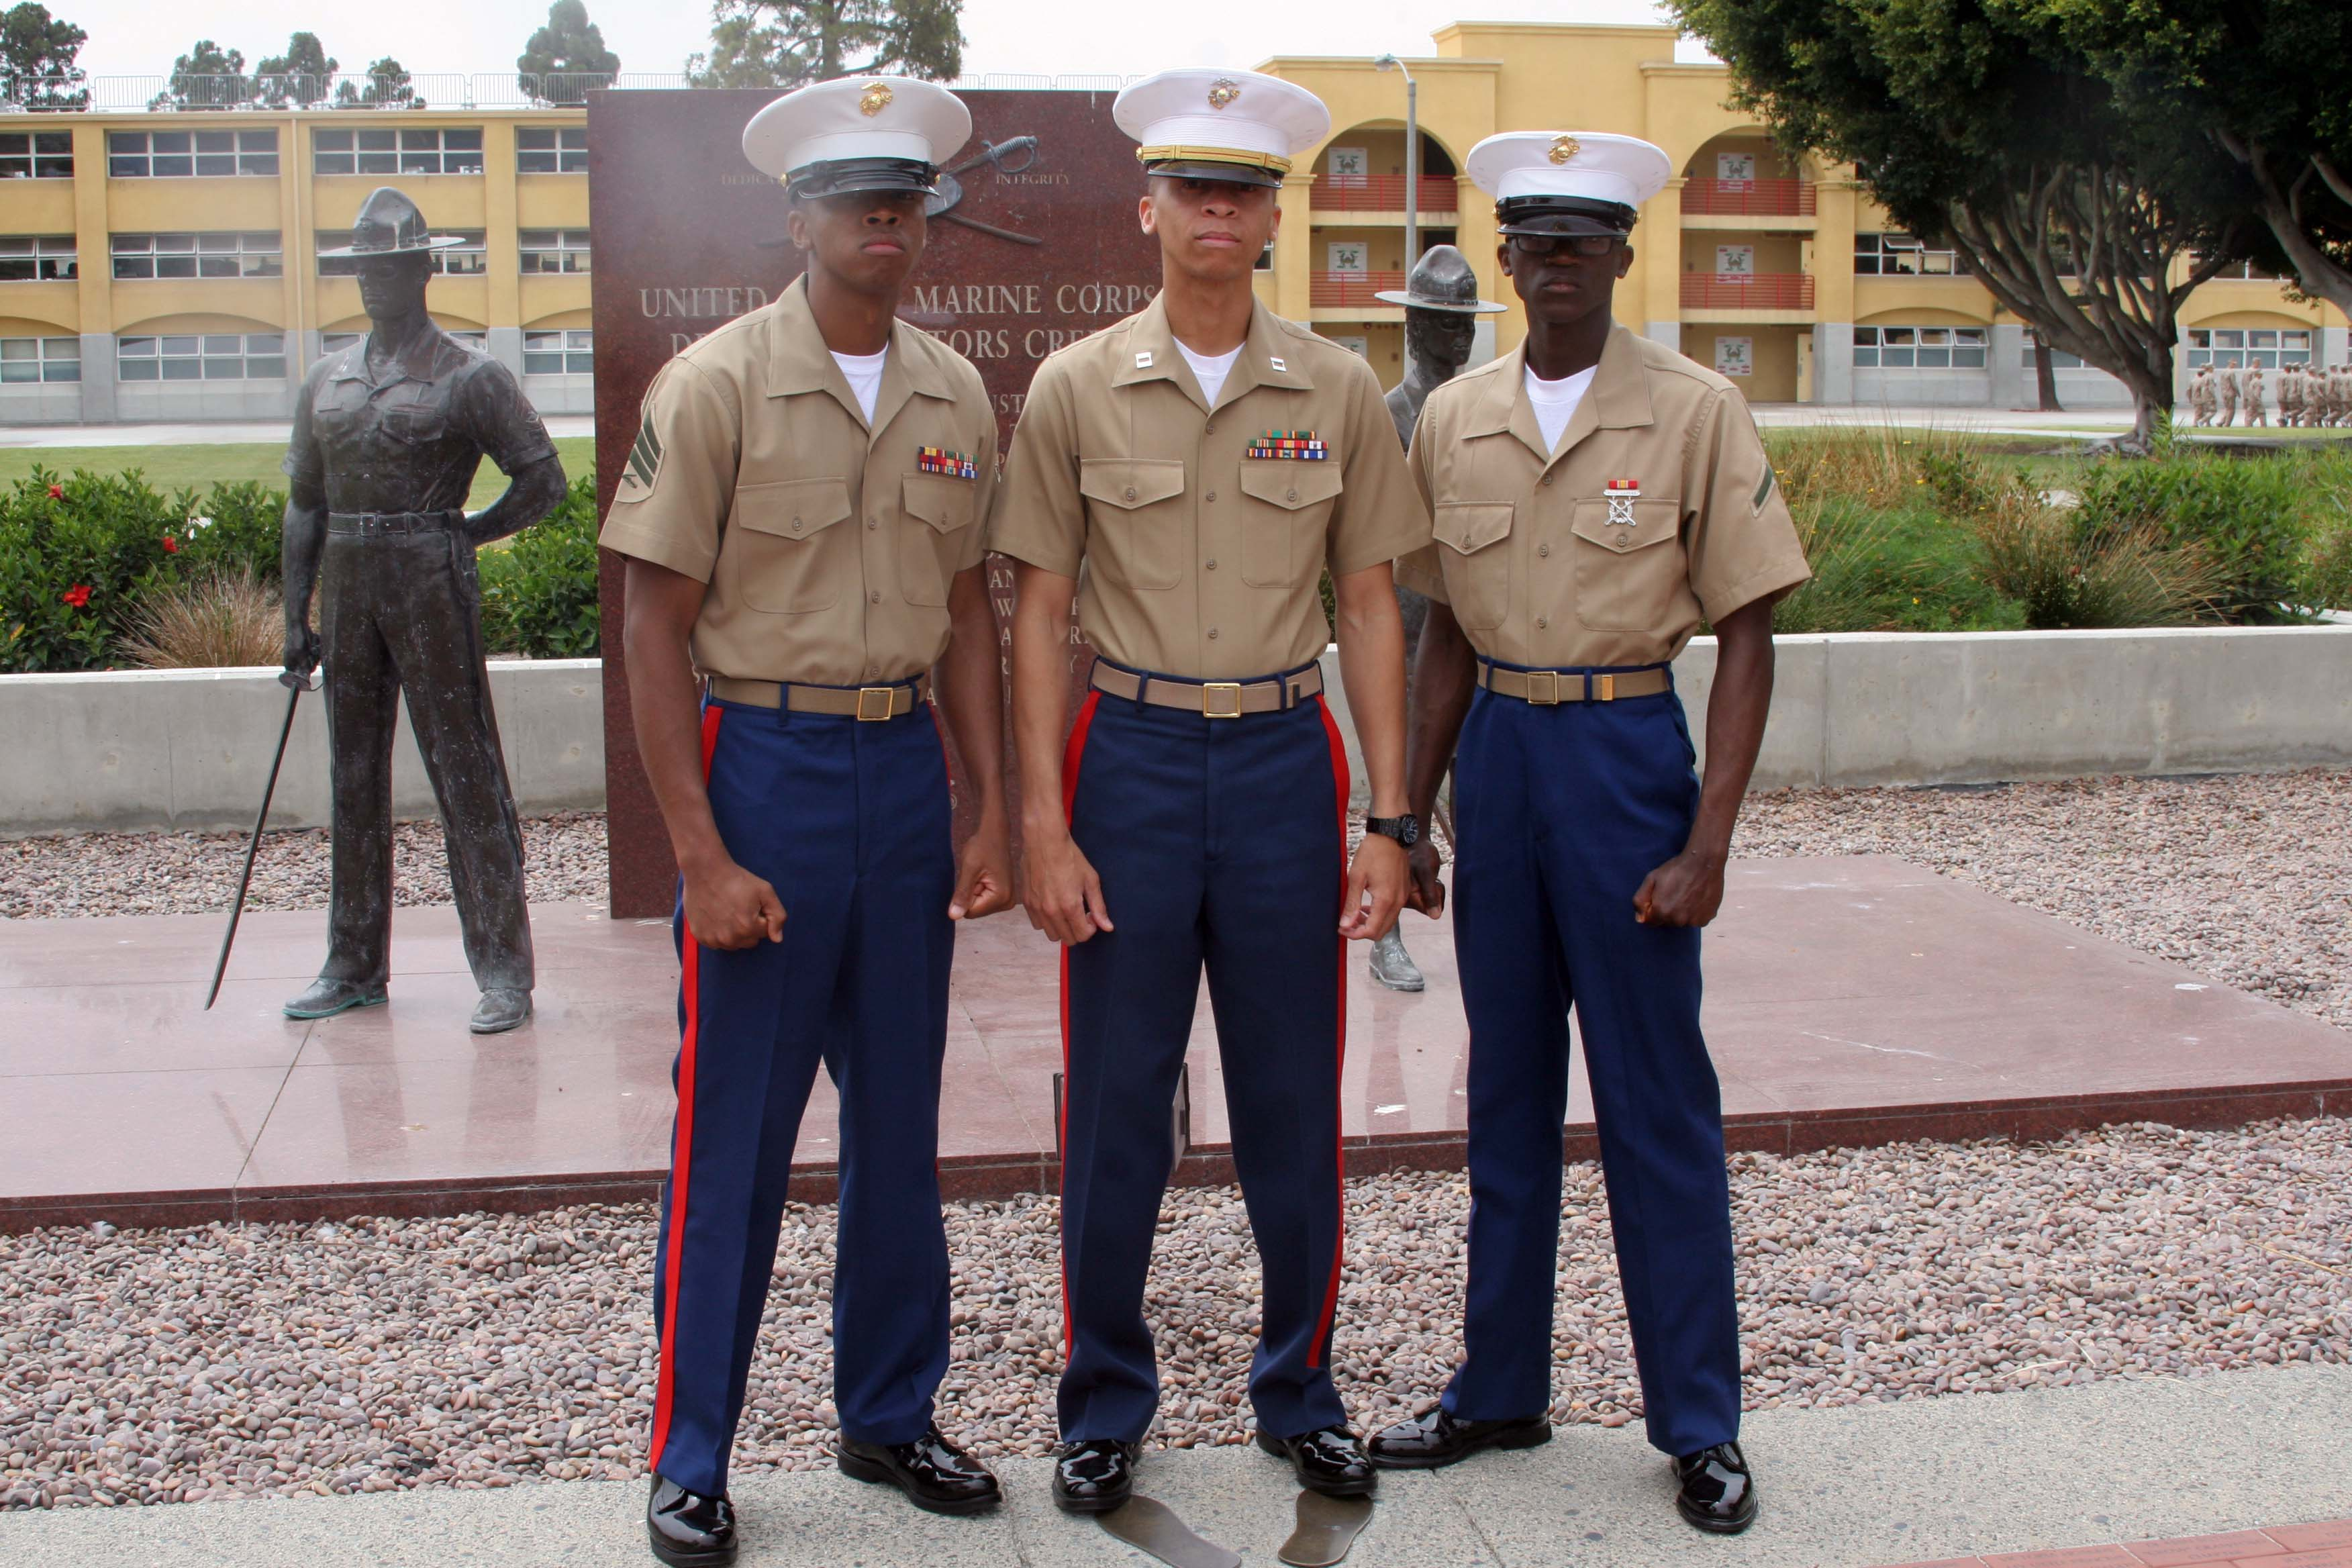 Marine Joins Sibling Footsteps Earns Title Marine Marine Corps Recruit Depot San Diego News